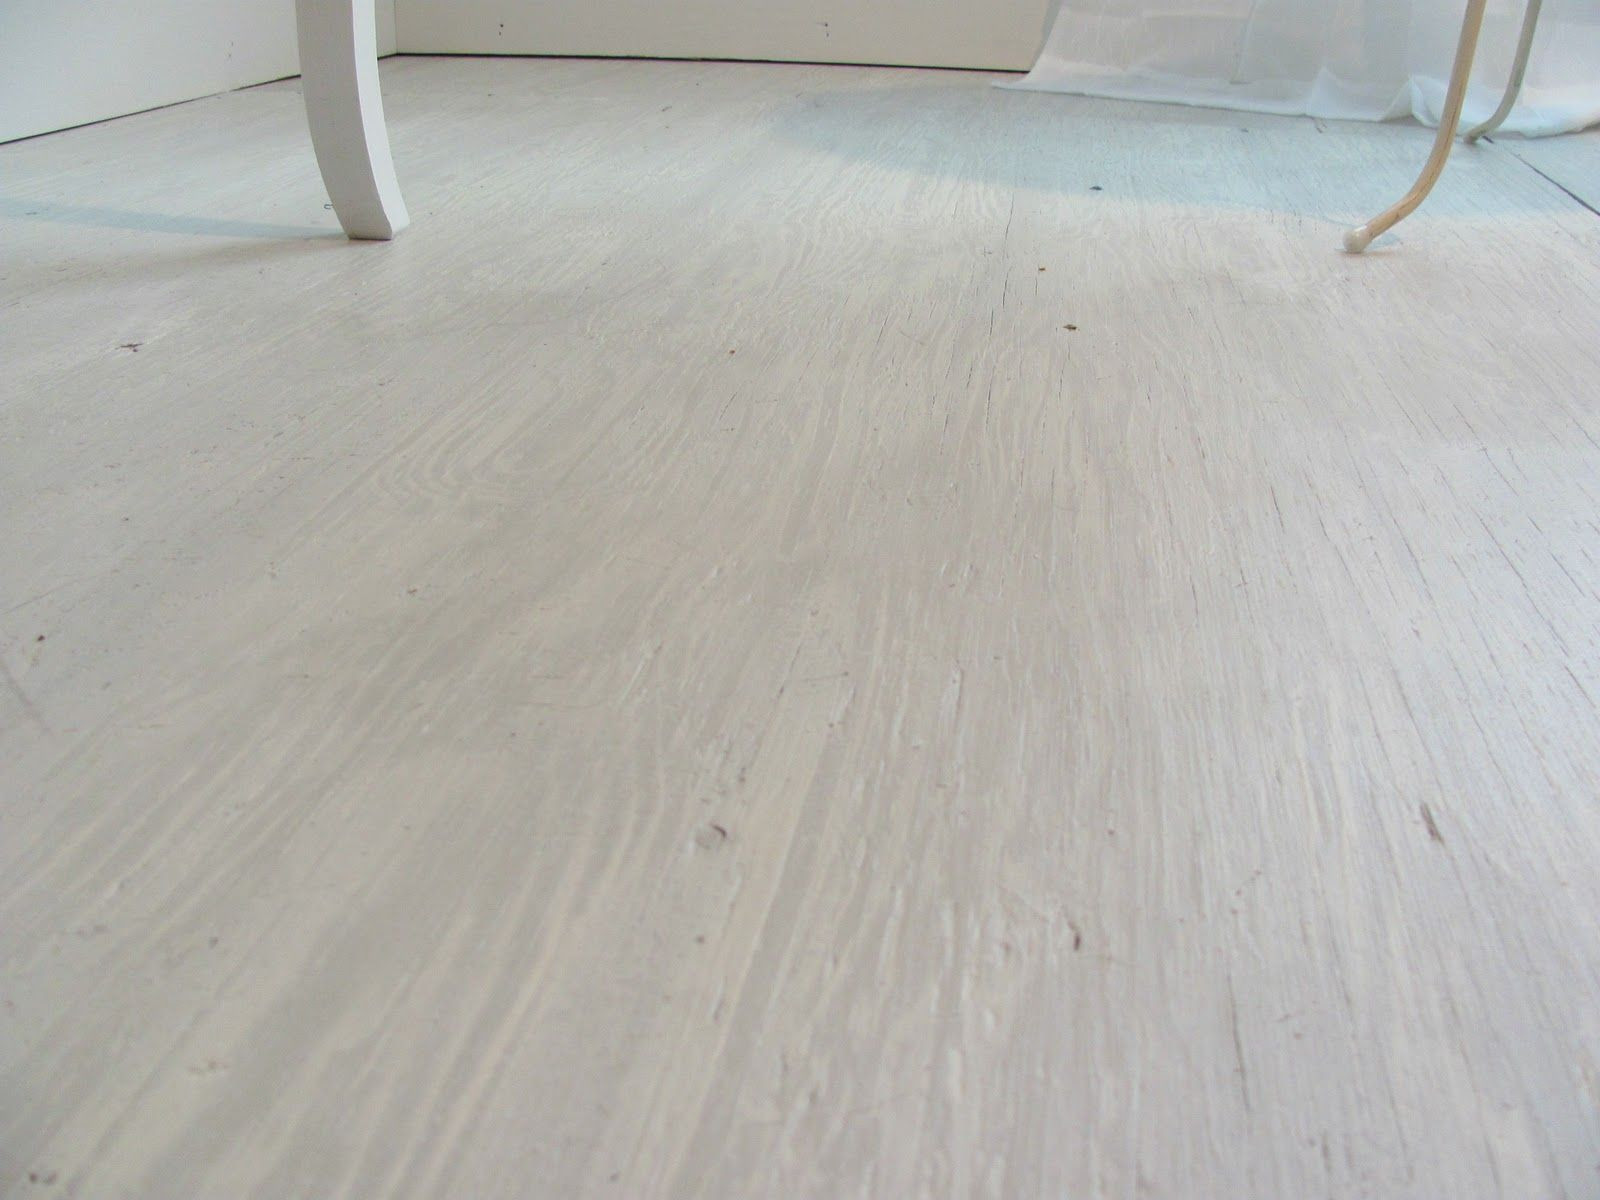 how to install engineered hardwood floor over plywood of whitewashed plywood floors not really but thats what it looks intended for whitewashed plywood floors not really but thats what it looks like very cool pretty time consuming it sounds like emerald cove